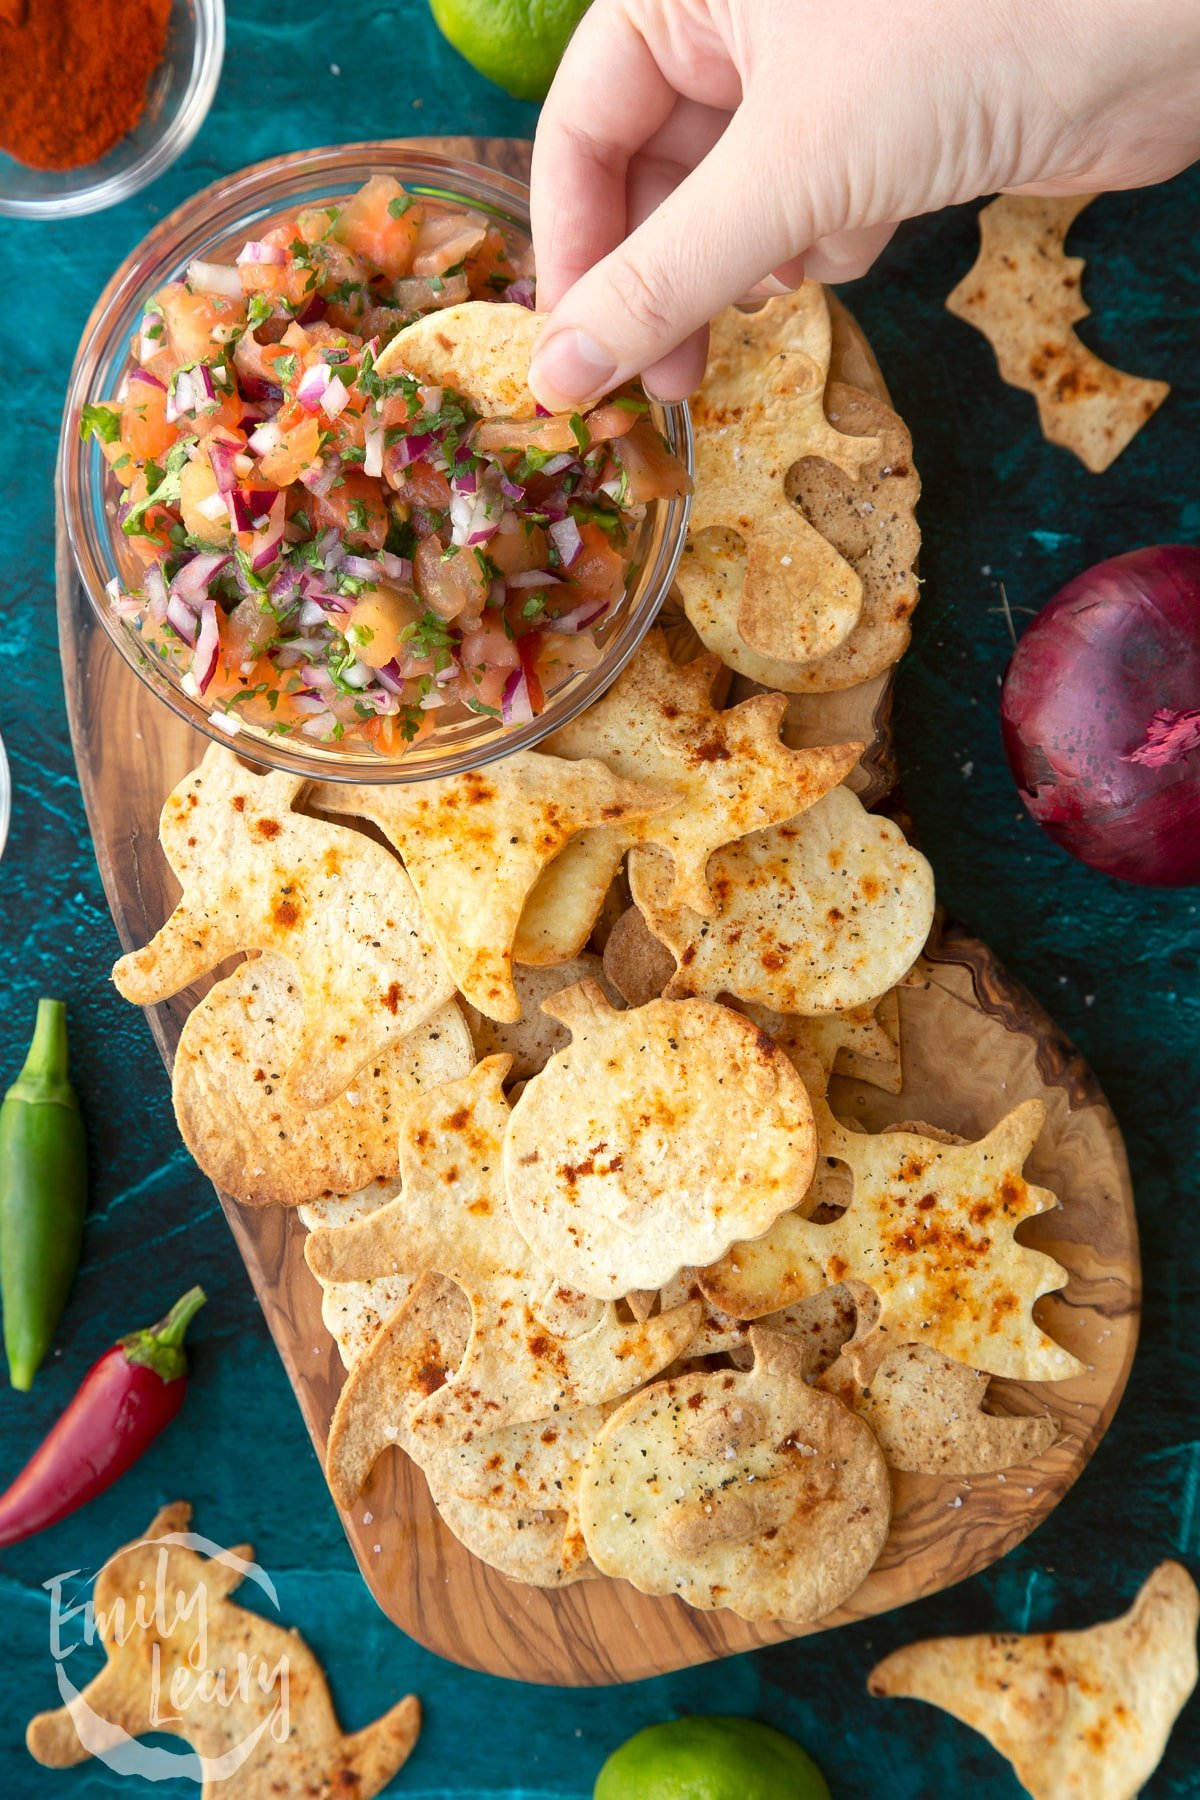 Halloween tortillas on a board with a small bowl of tomato salsa. A hand dips half a pumpkin shaped chip.